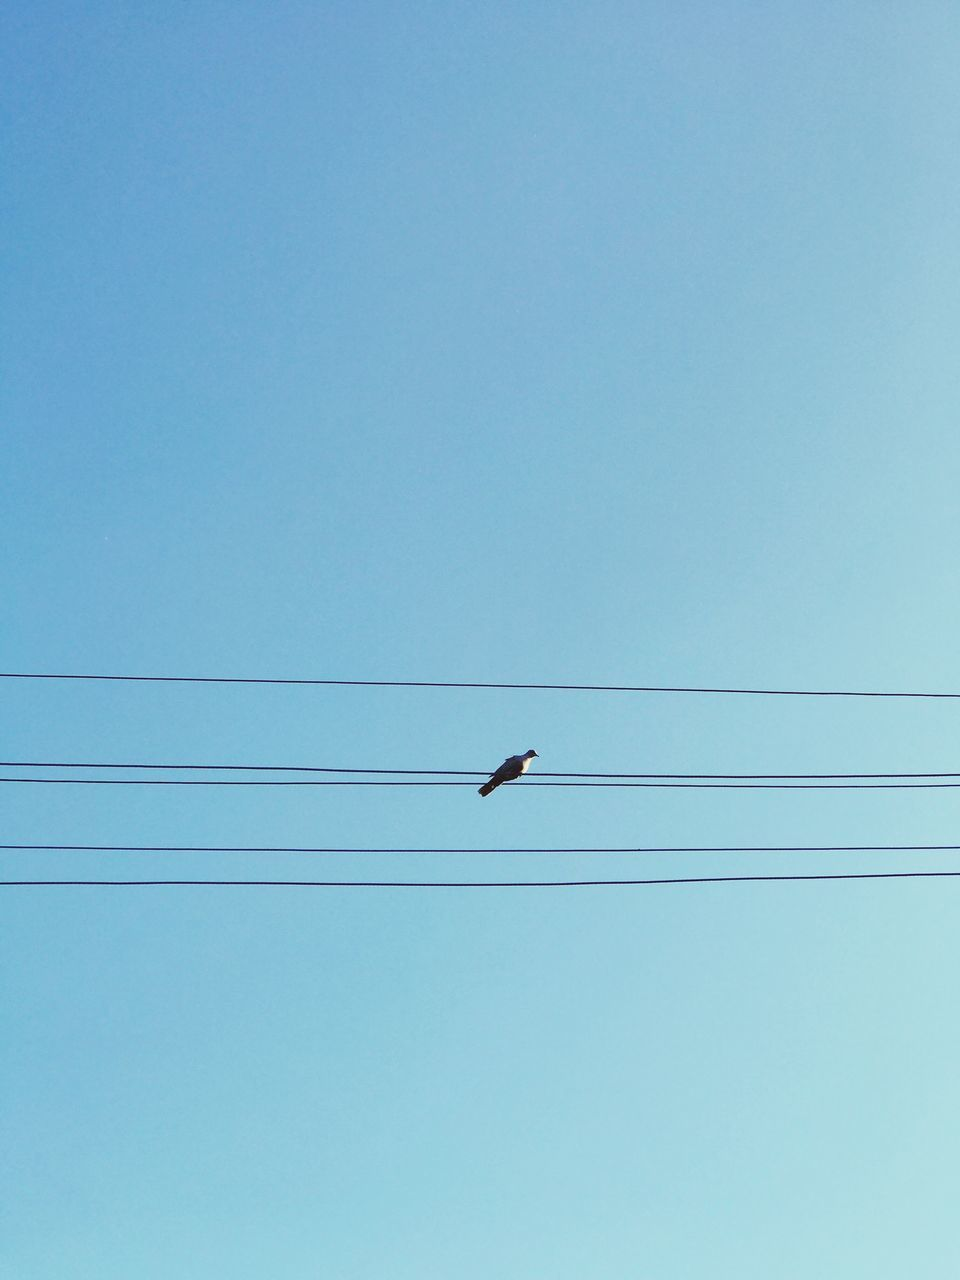 cable, low angle view, copy space, clear sky, bird, flying, blue, animal themes, animals in the wild, power line, mid-air, power supply, no people, connection, electricity, outdoors, nature, day, one animal, technology, telephone line, sky